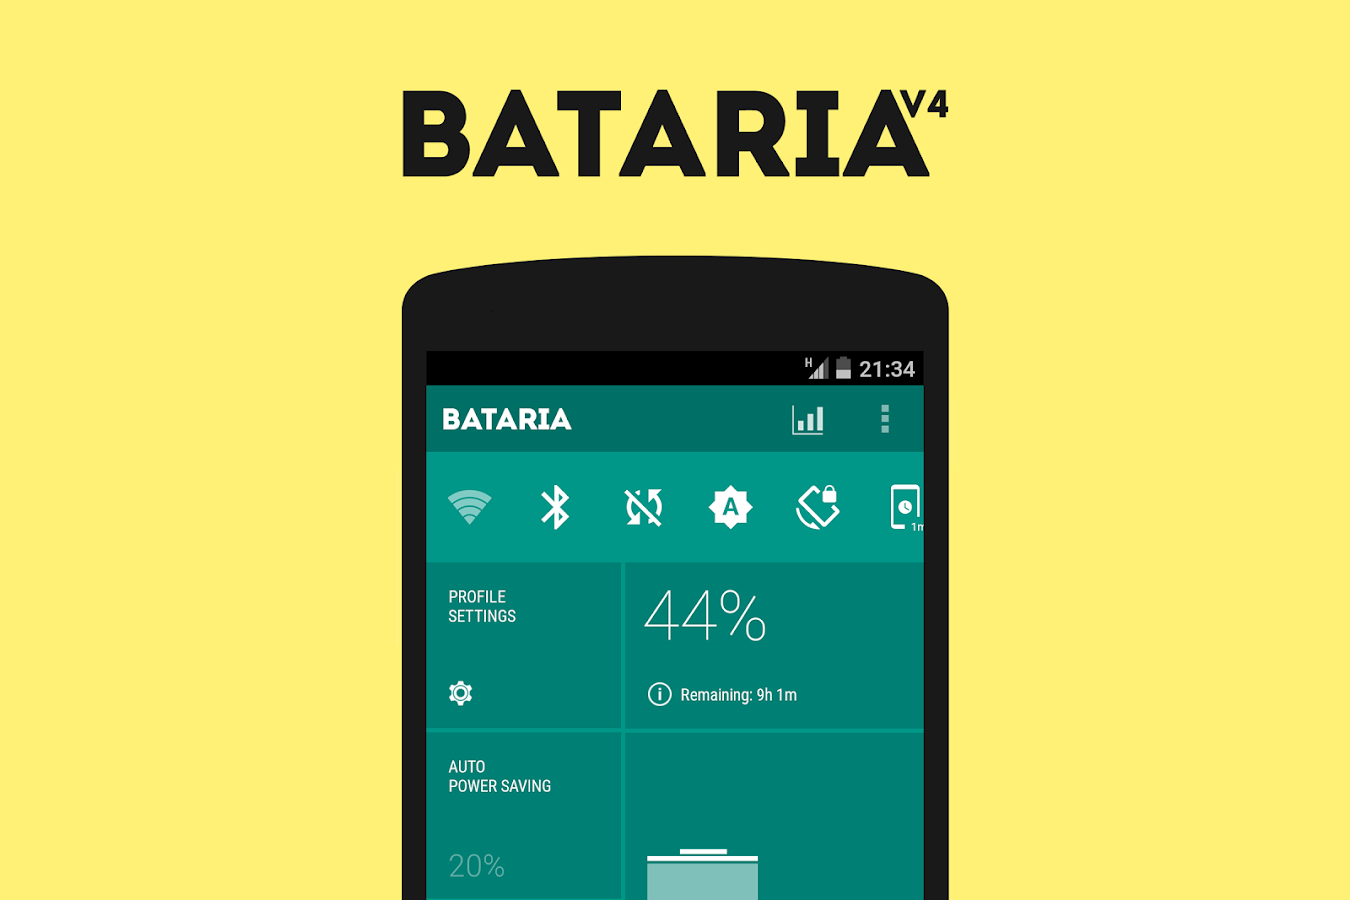 Battery Saver - Bataria Pro- screenshot